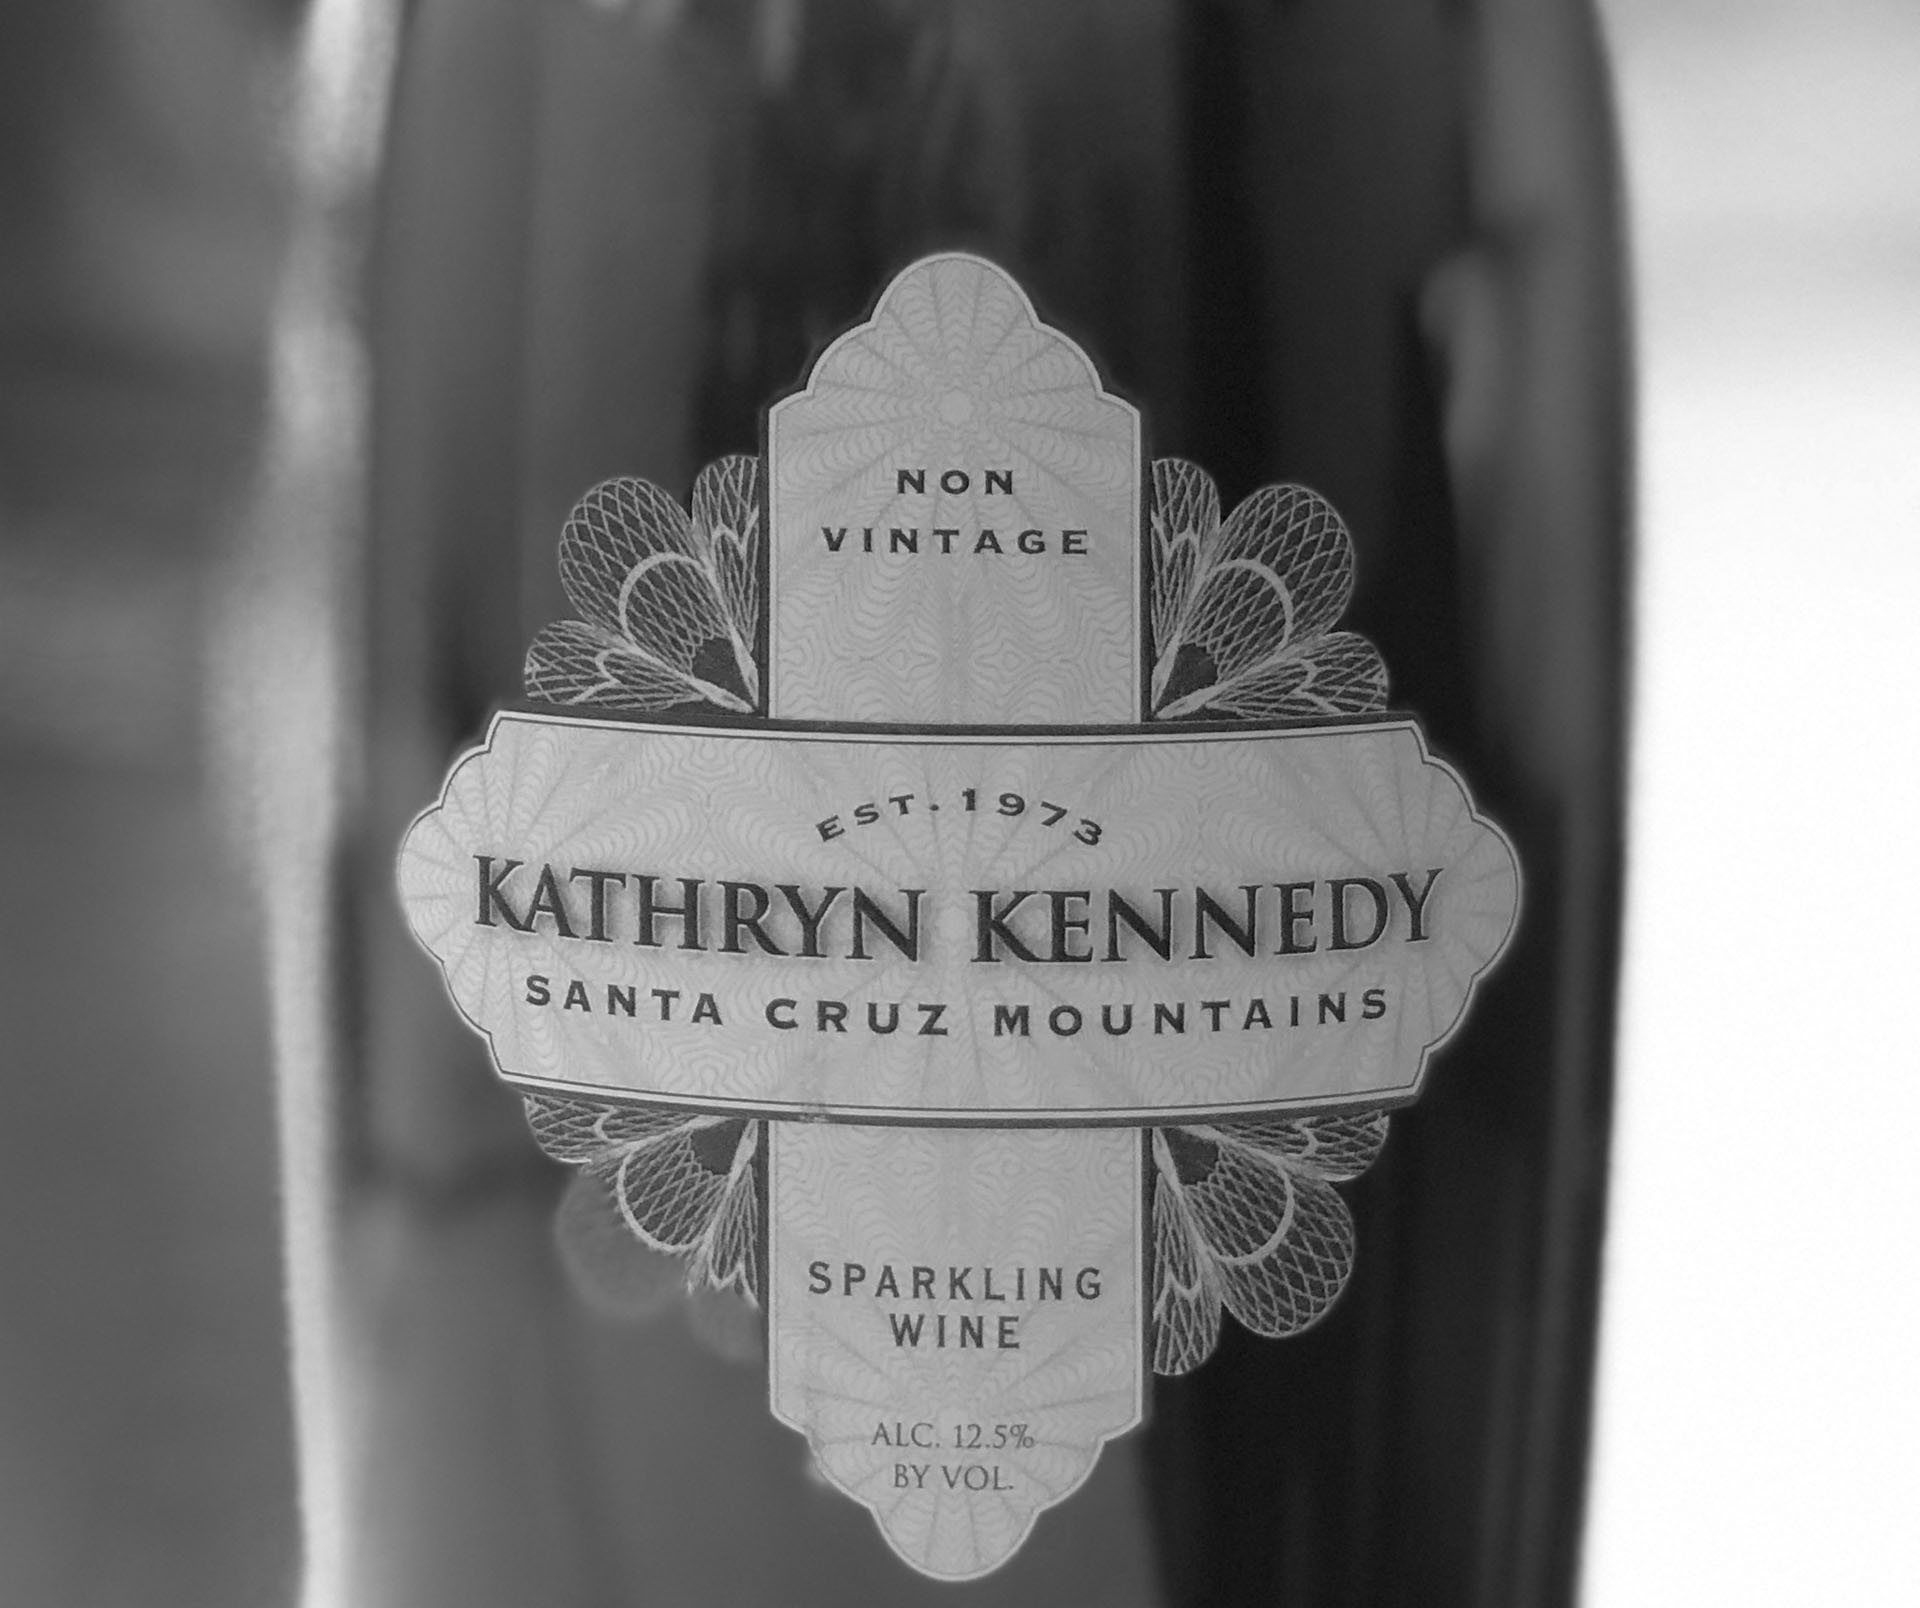 Image of NV BRUT at Kathryn Kennedy Winery